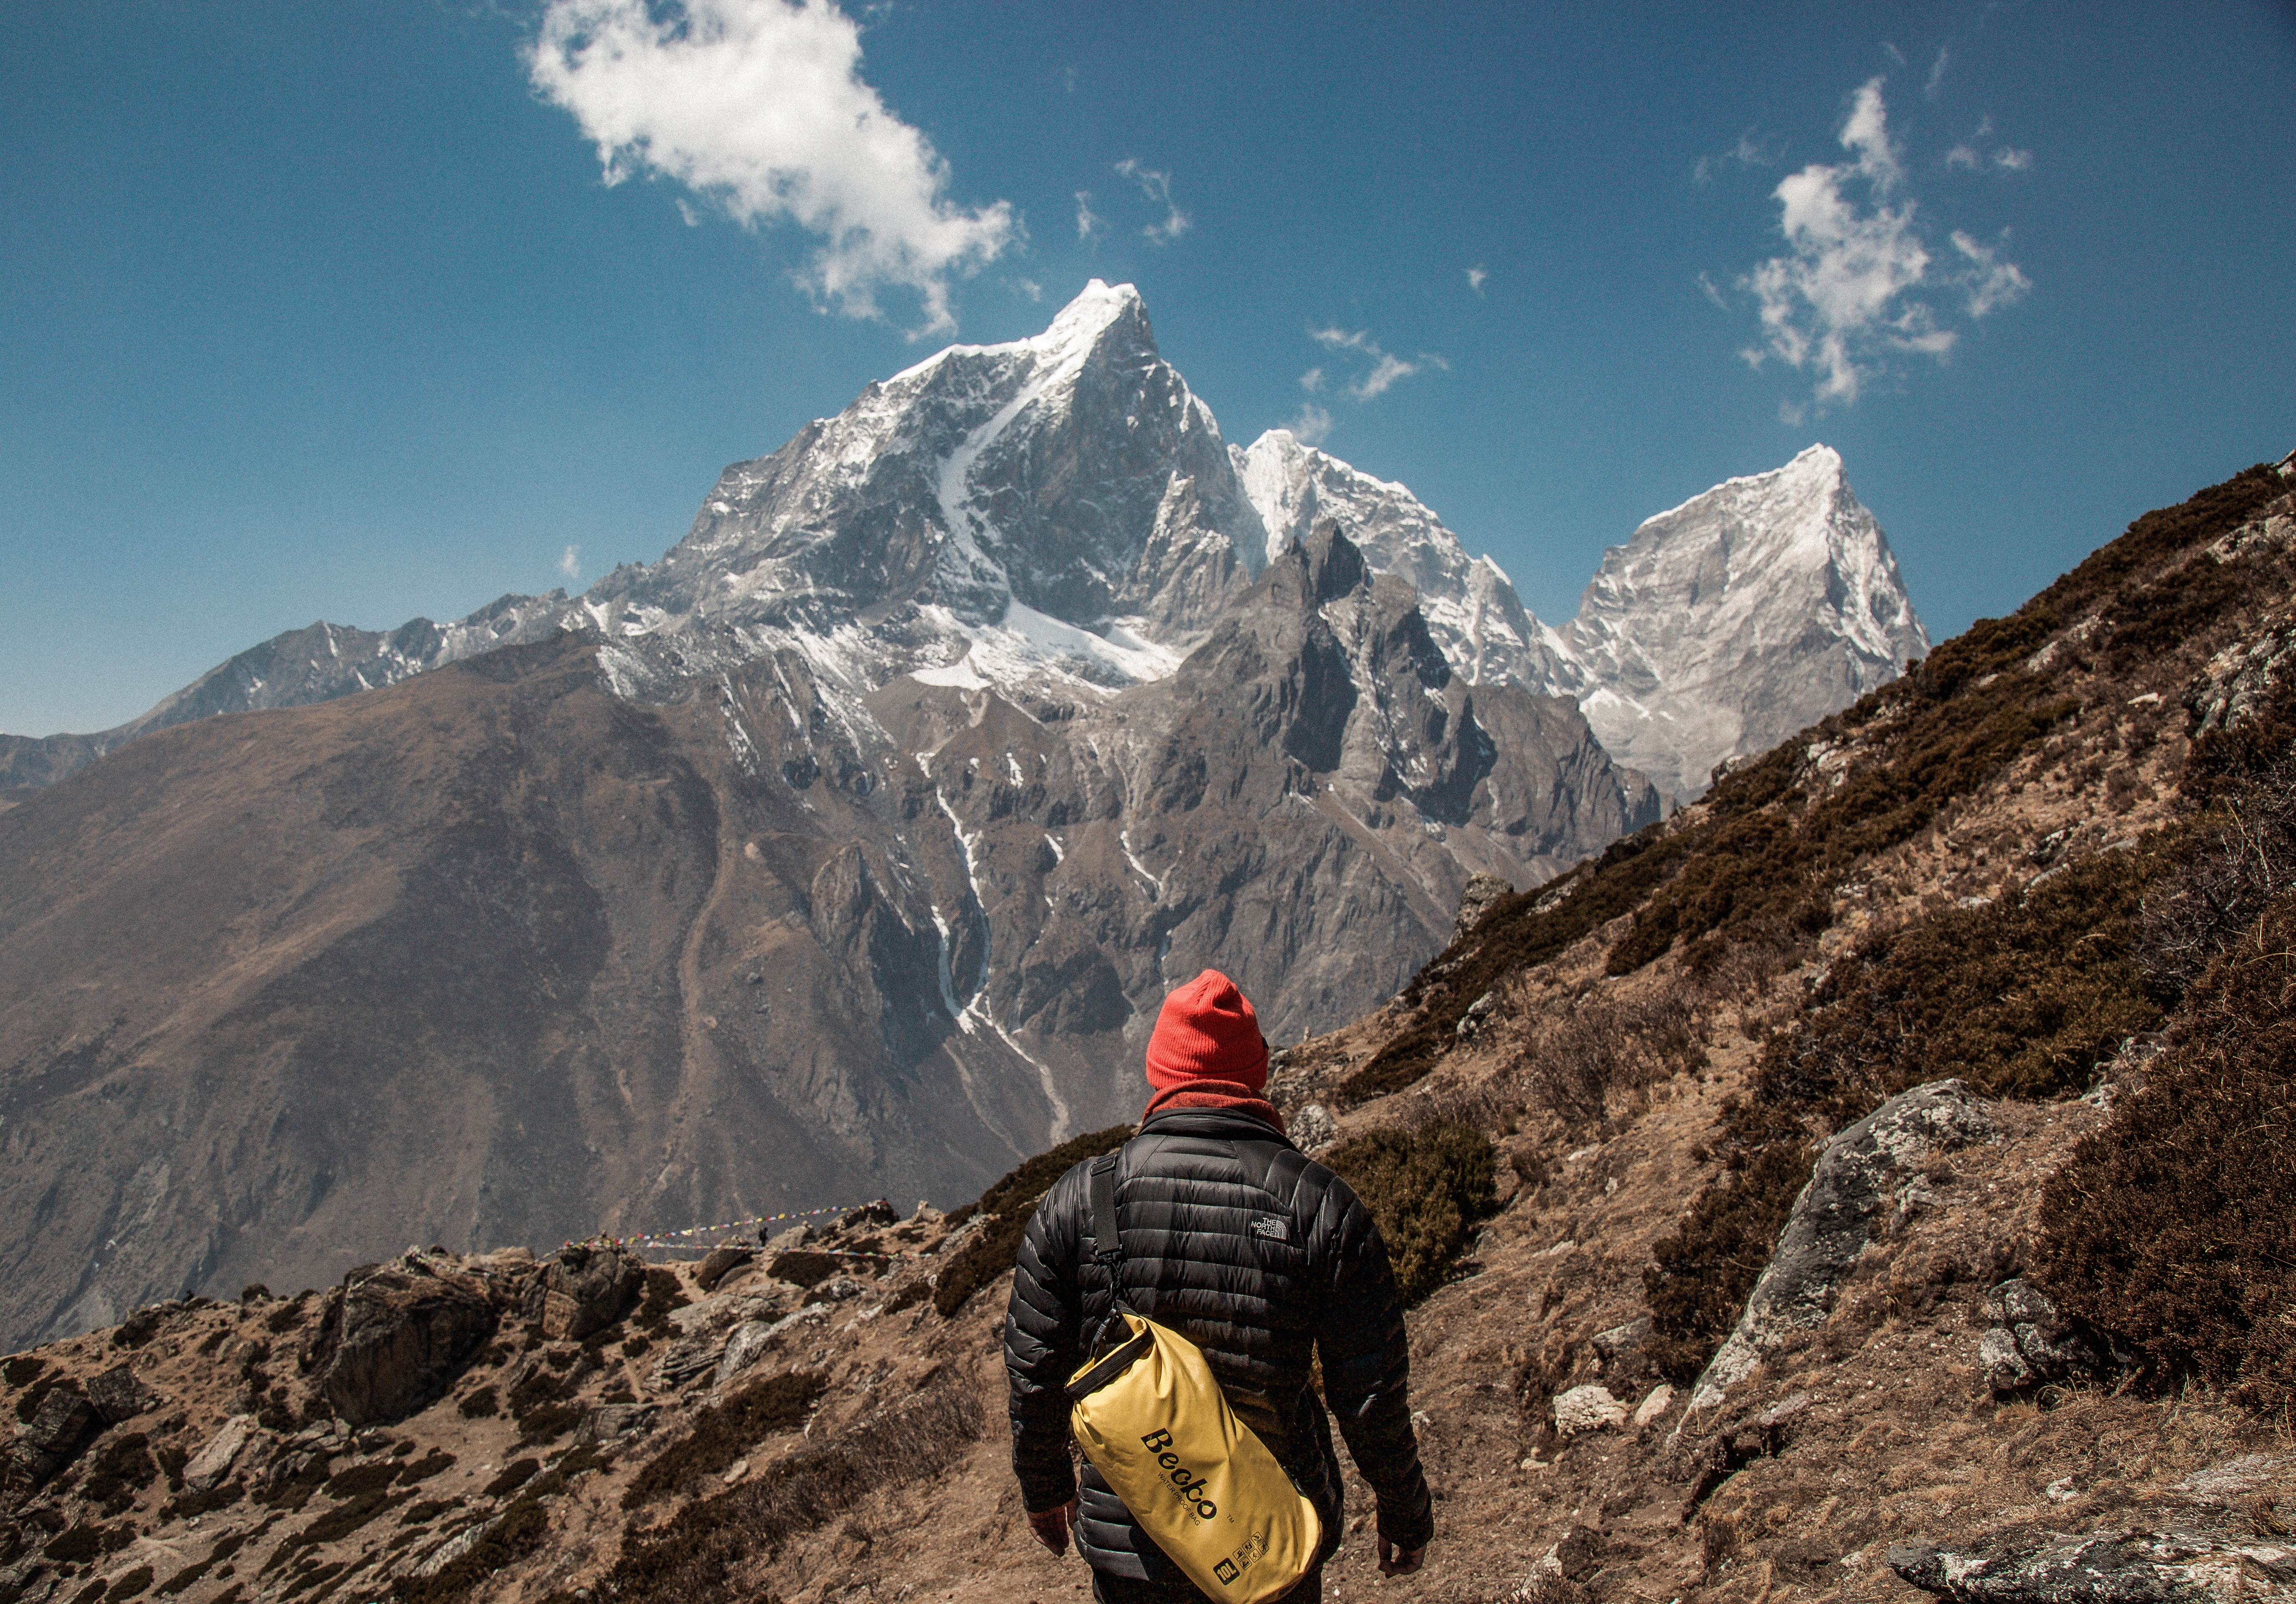 A hiker on a rocky slope looking away towards a tall snowy peak